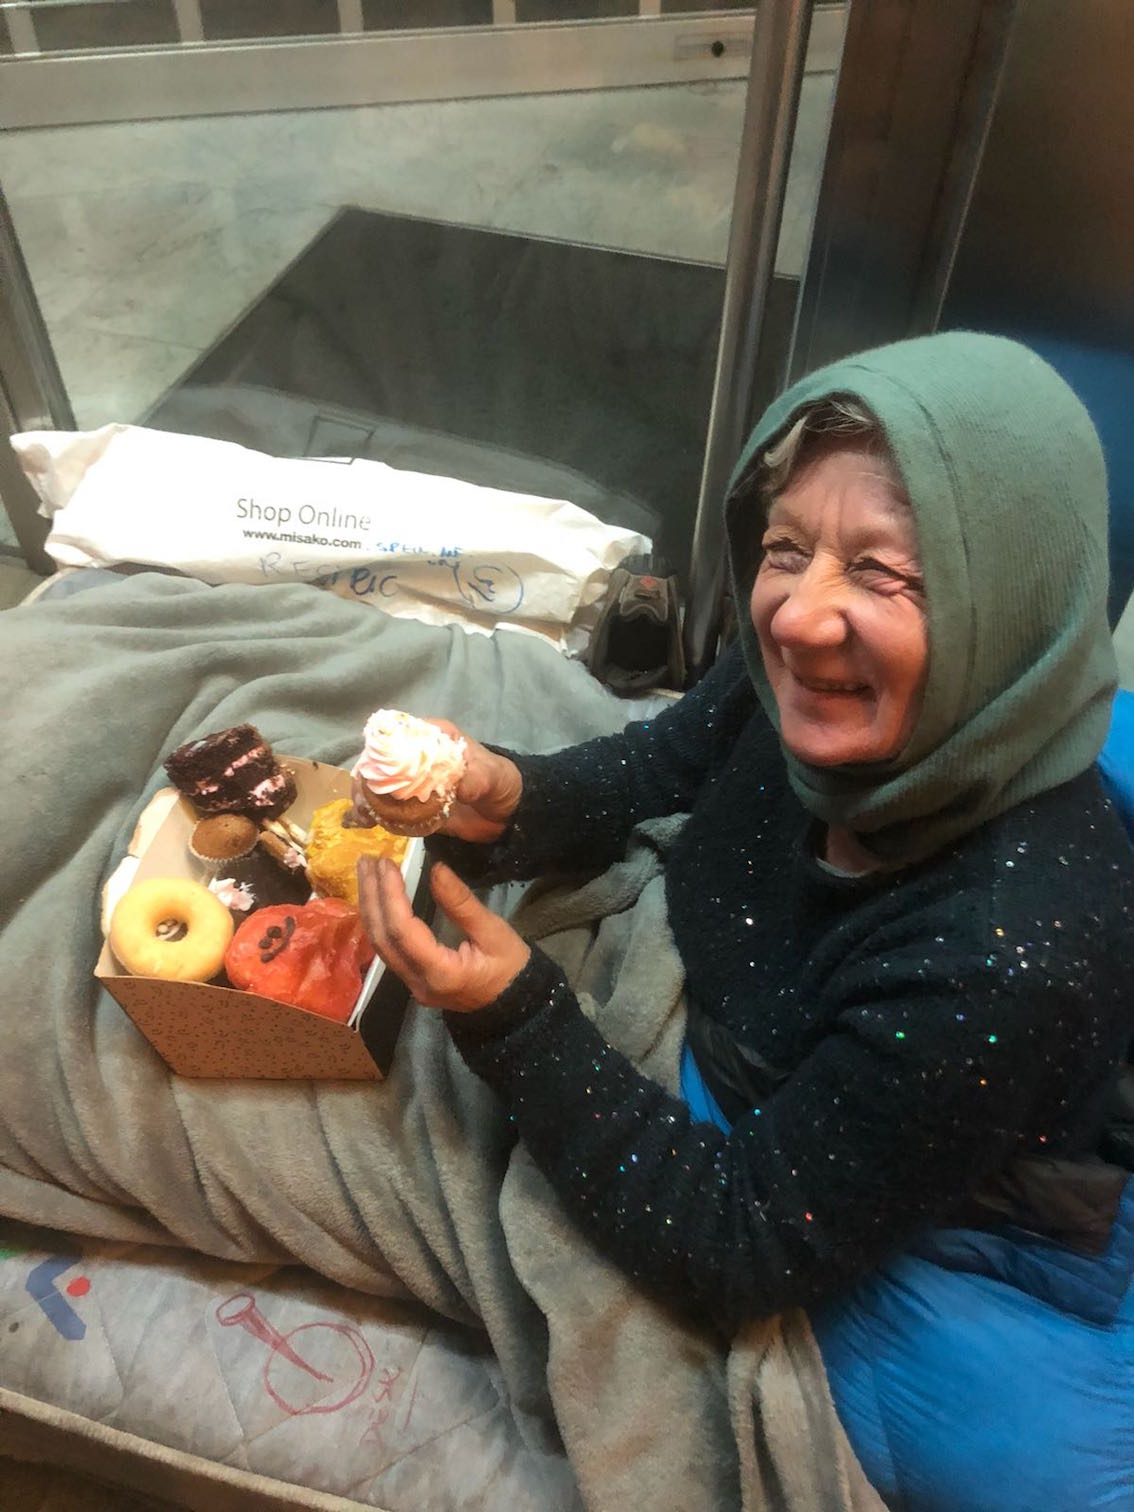 homeless woman smiling selling cakes